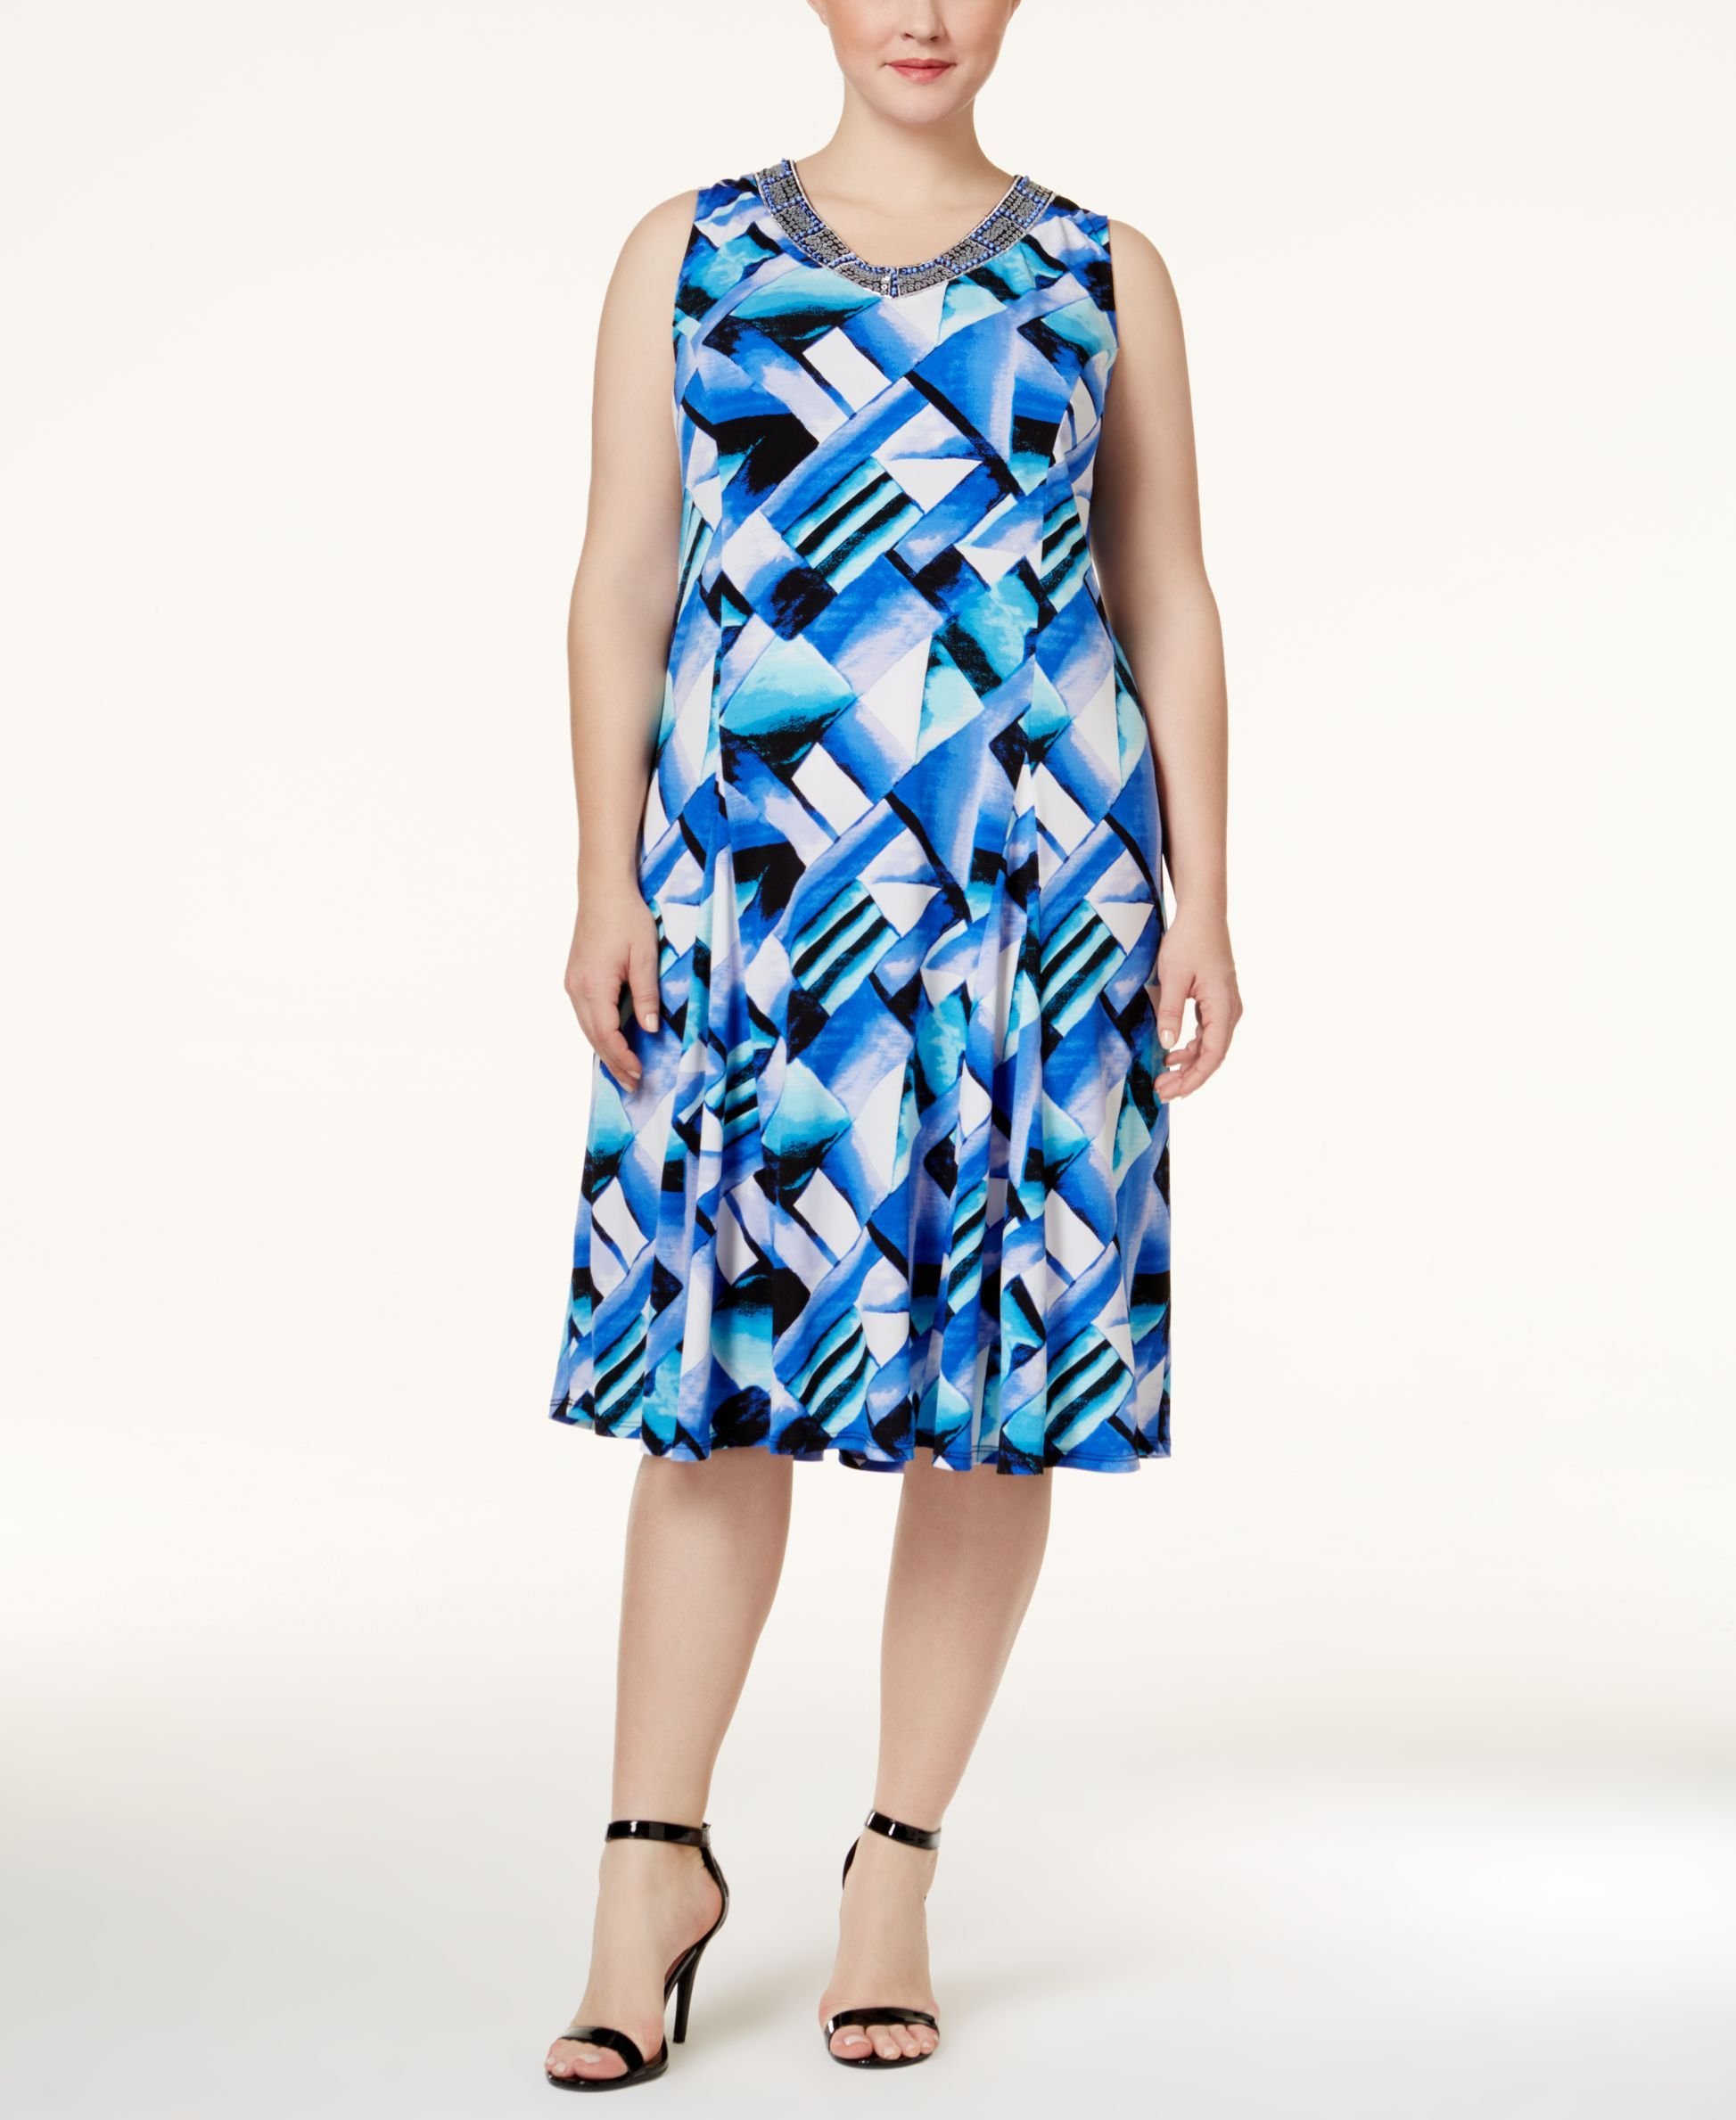 Jm collection plus size printed fit u flare dress only at macyus